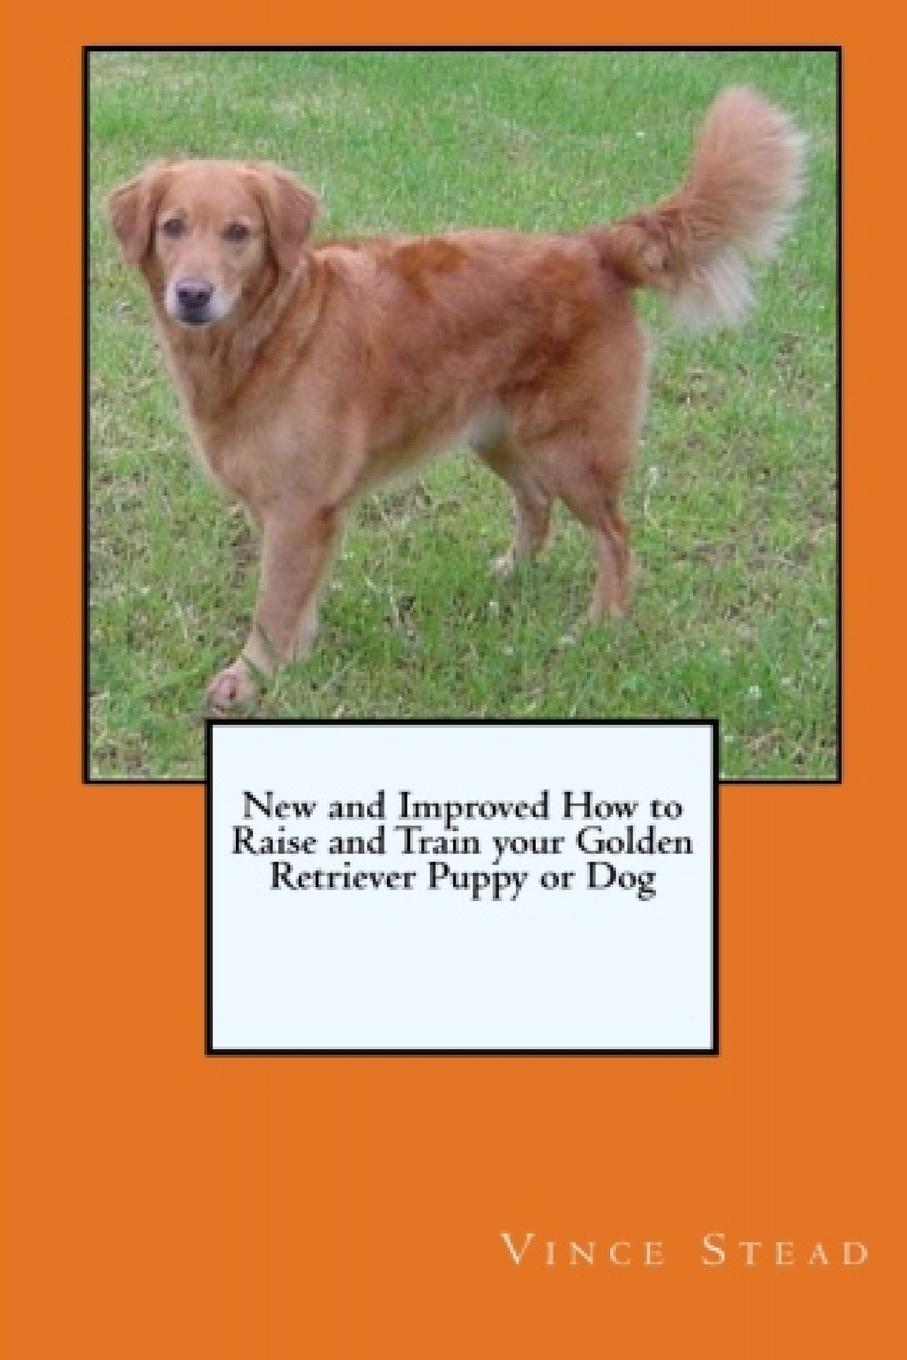 Vince Stead New and Improved How to Raise and Train your Golden Retriever Puppy or Dog vince stead how to understand and train your golden retriever puppy or dog